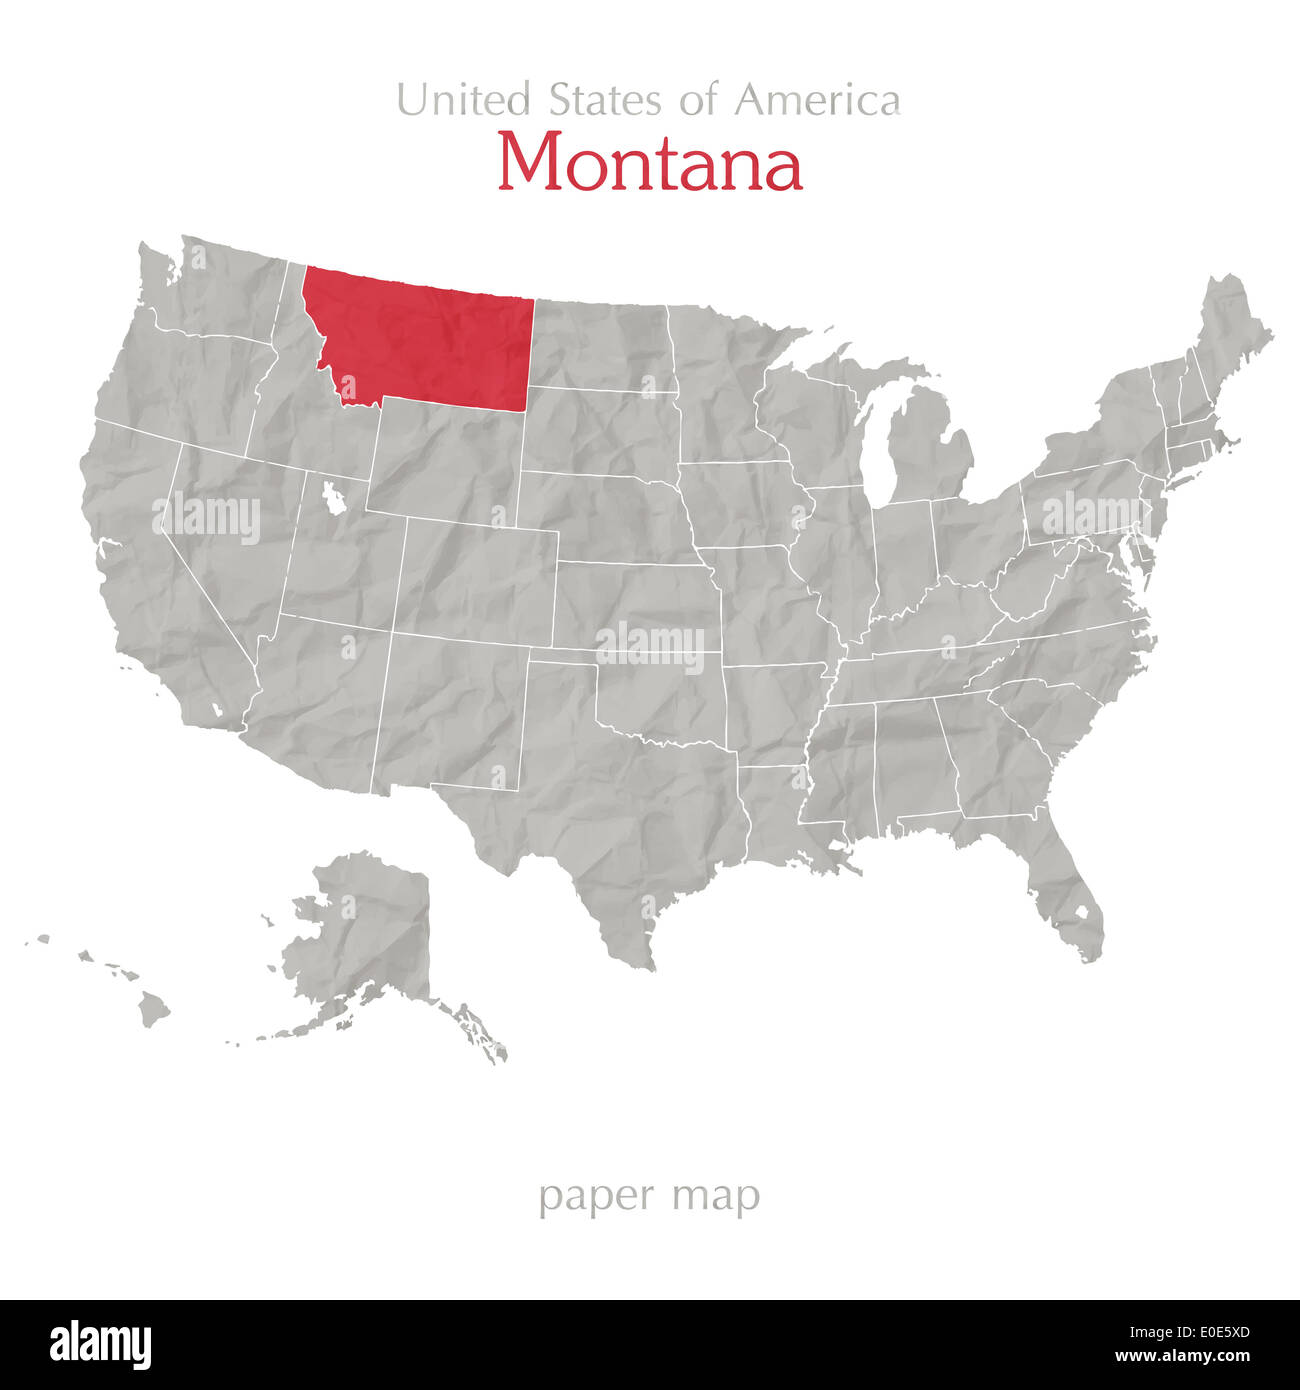 United States of America map and Montana territory isolated on white